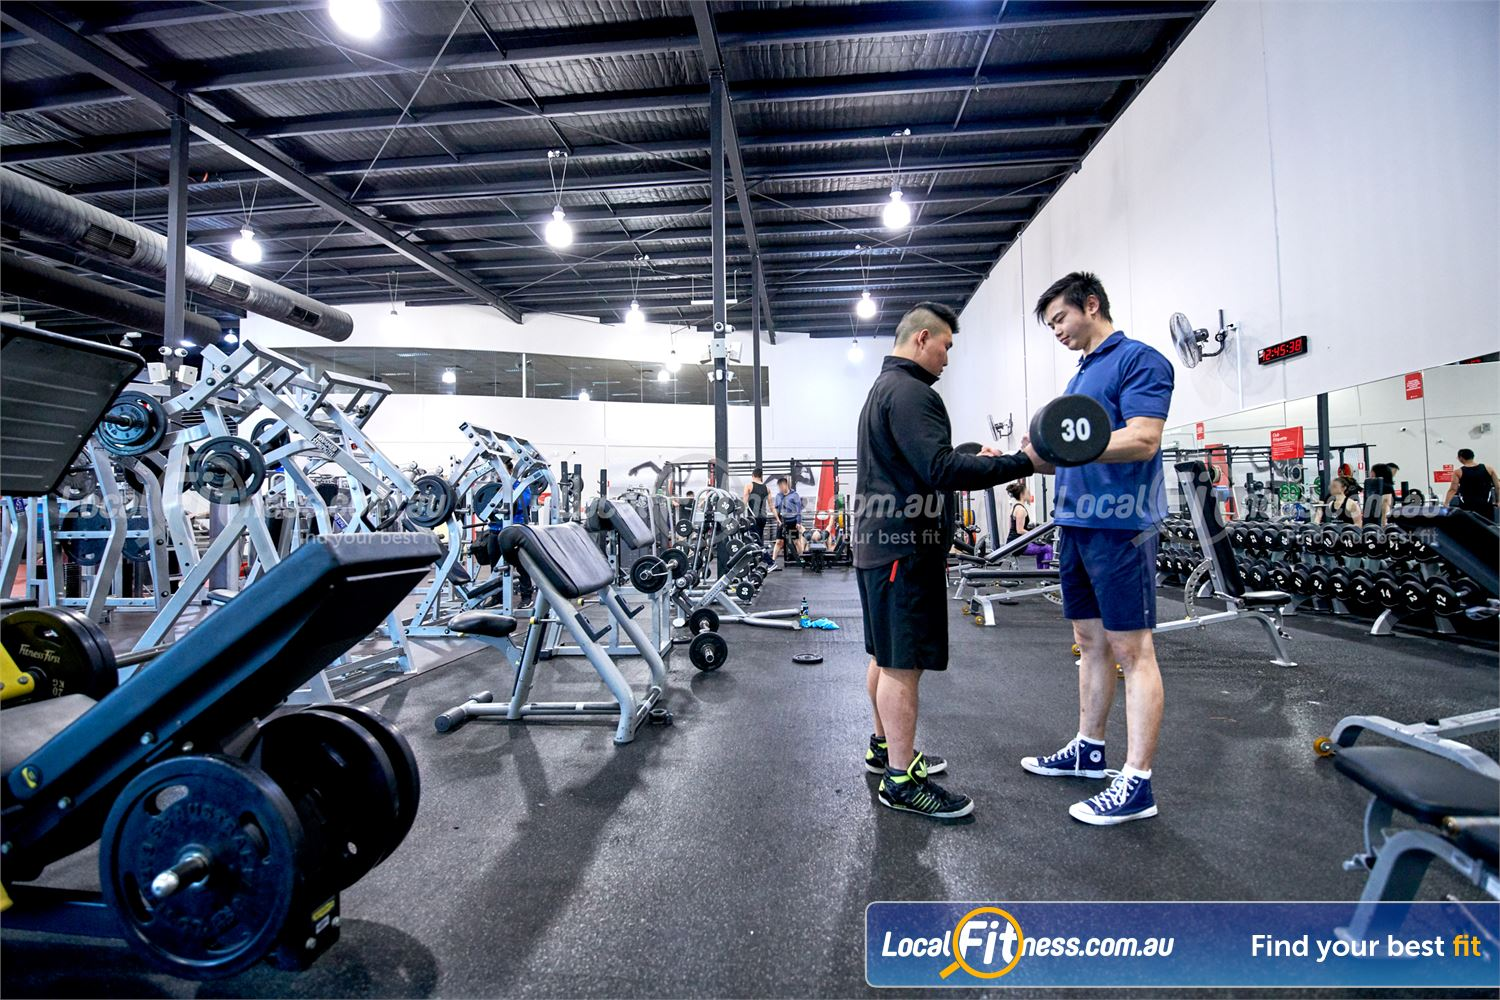 Fitness First Near Burwood East Our free-weights area is fully equipped with dumbbells, barbells and more.